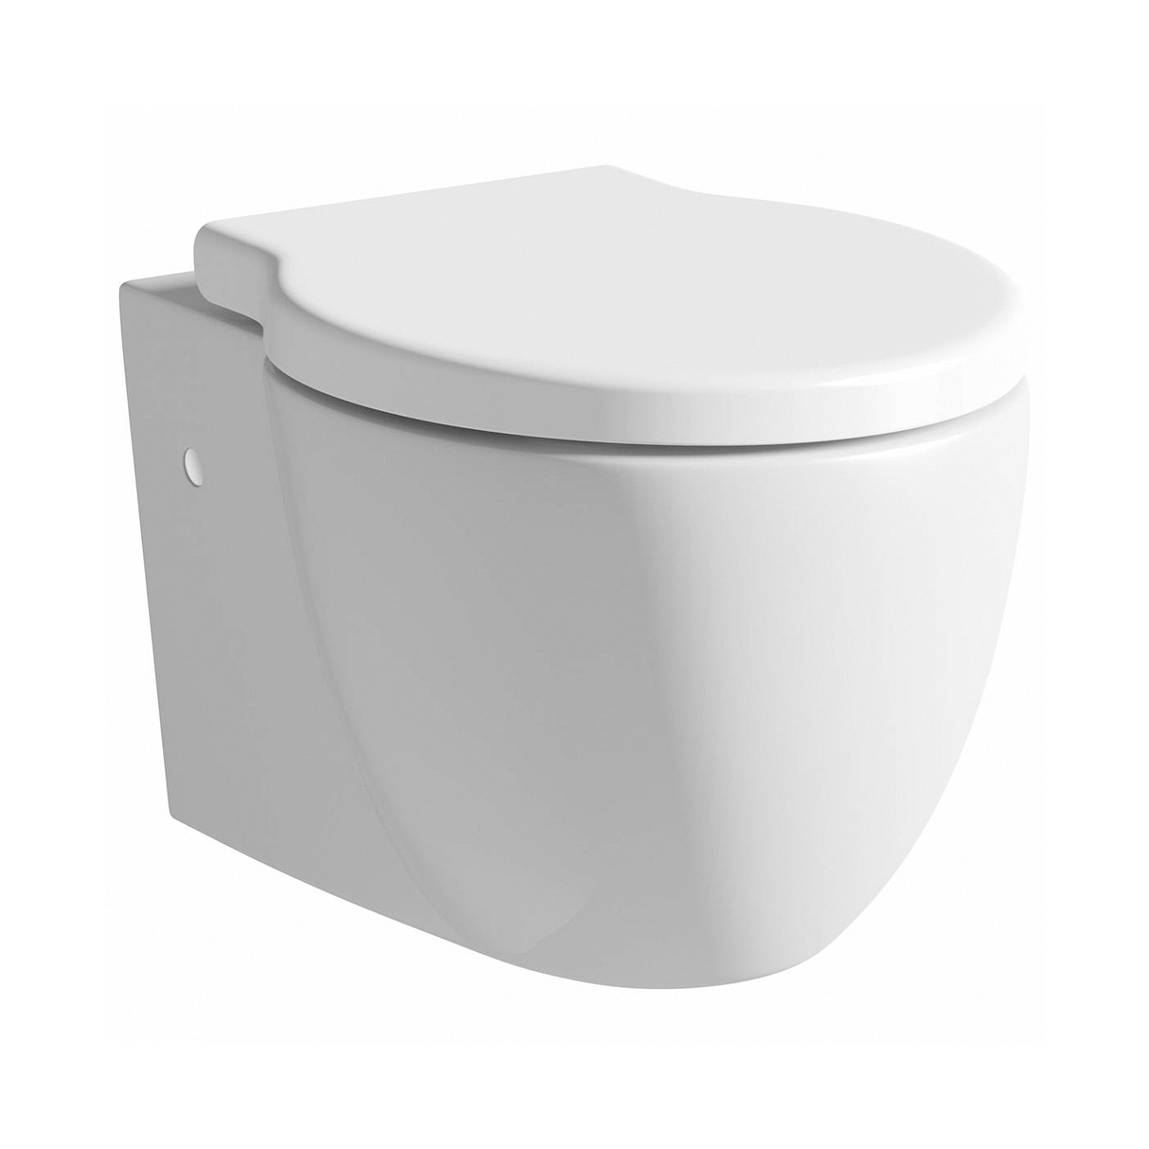 Image of Maine Wall Hung Toilet inc Luxury Soft Close Seat